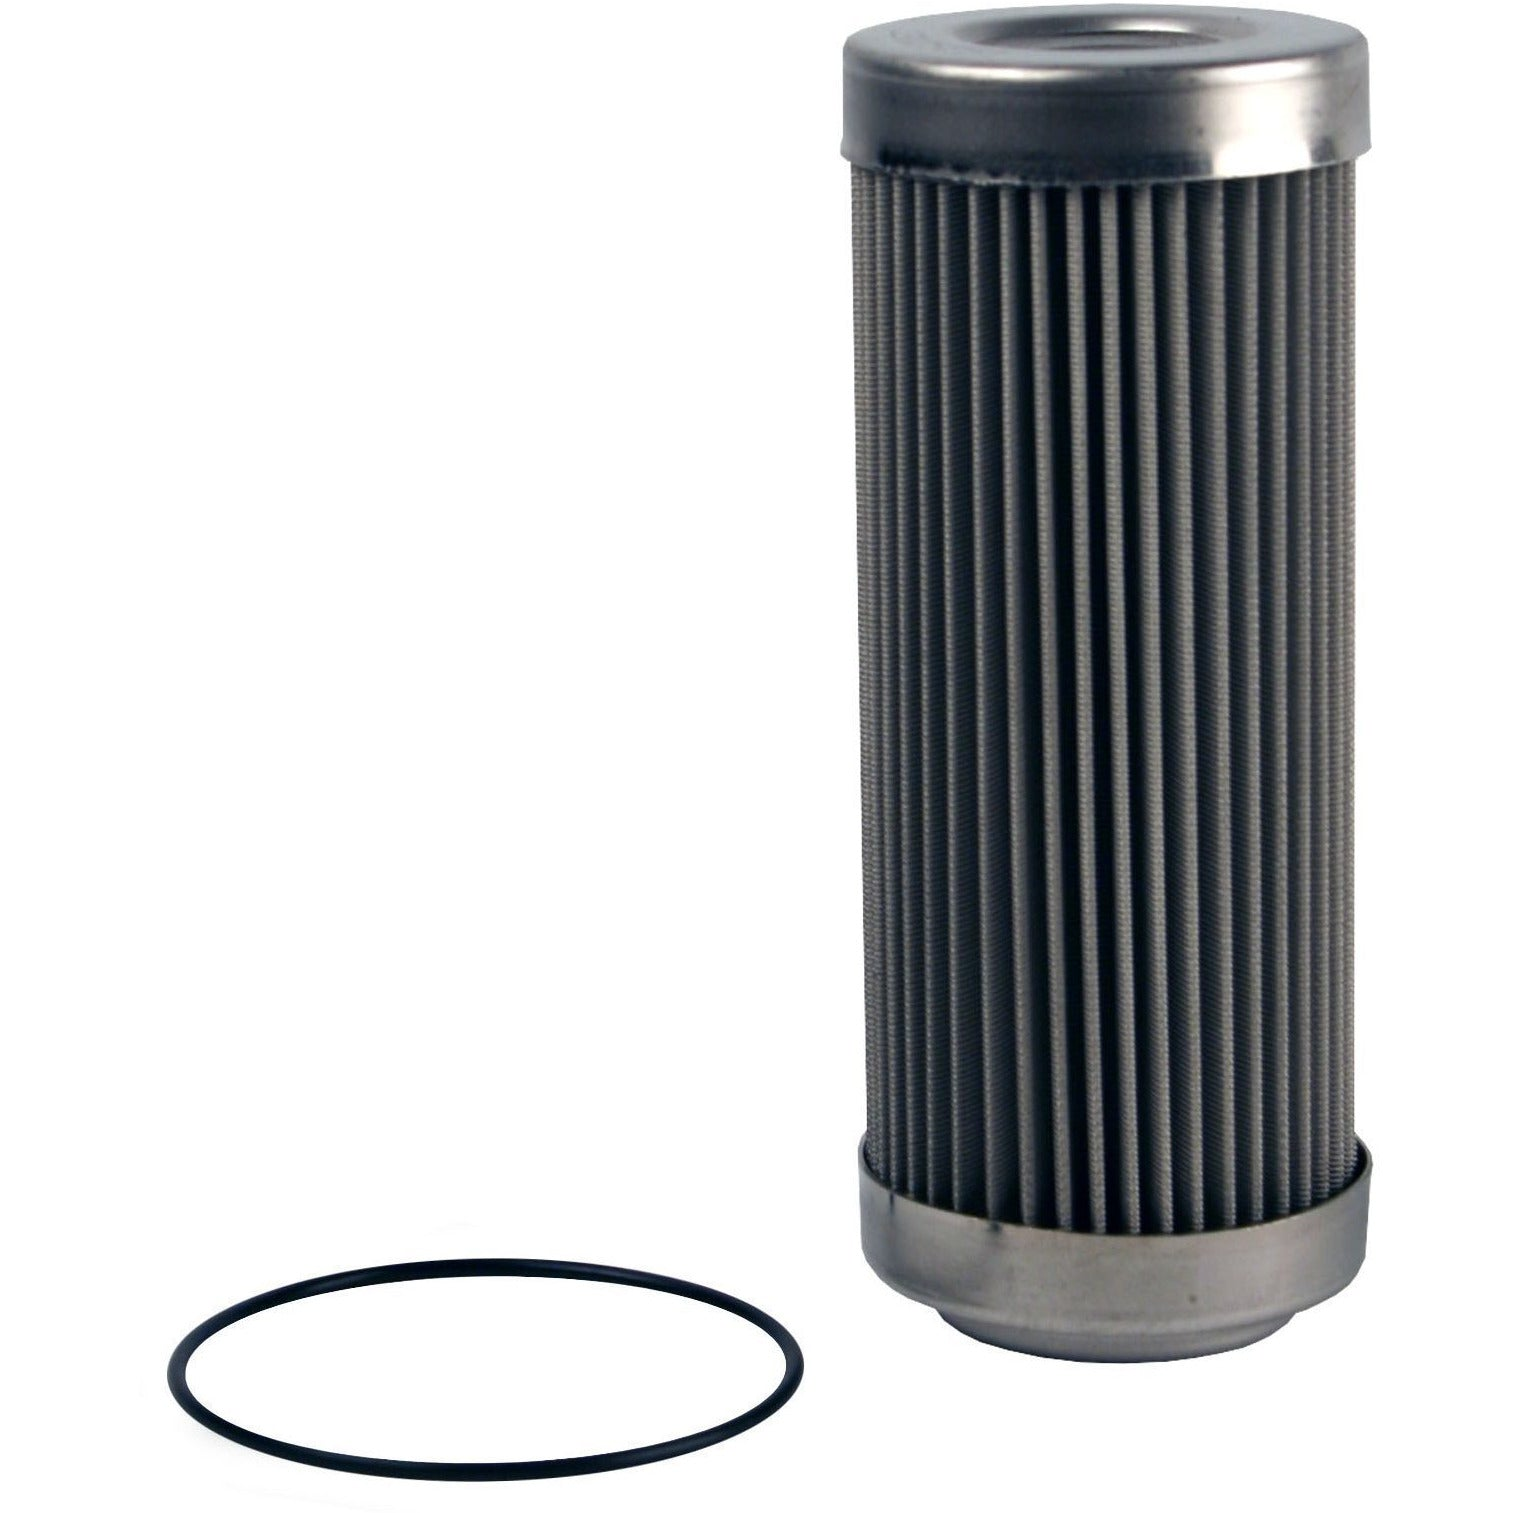 Aeromotive 40 Micron Stainless Element for ORB-12 Filter 12642-Aeromotive-Motion Raceworks